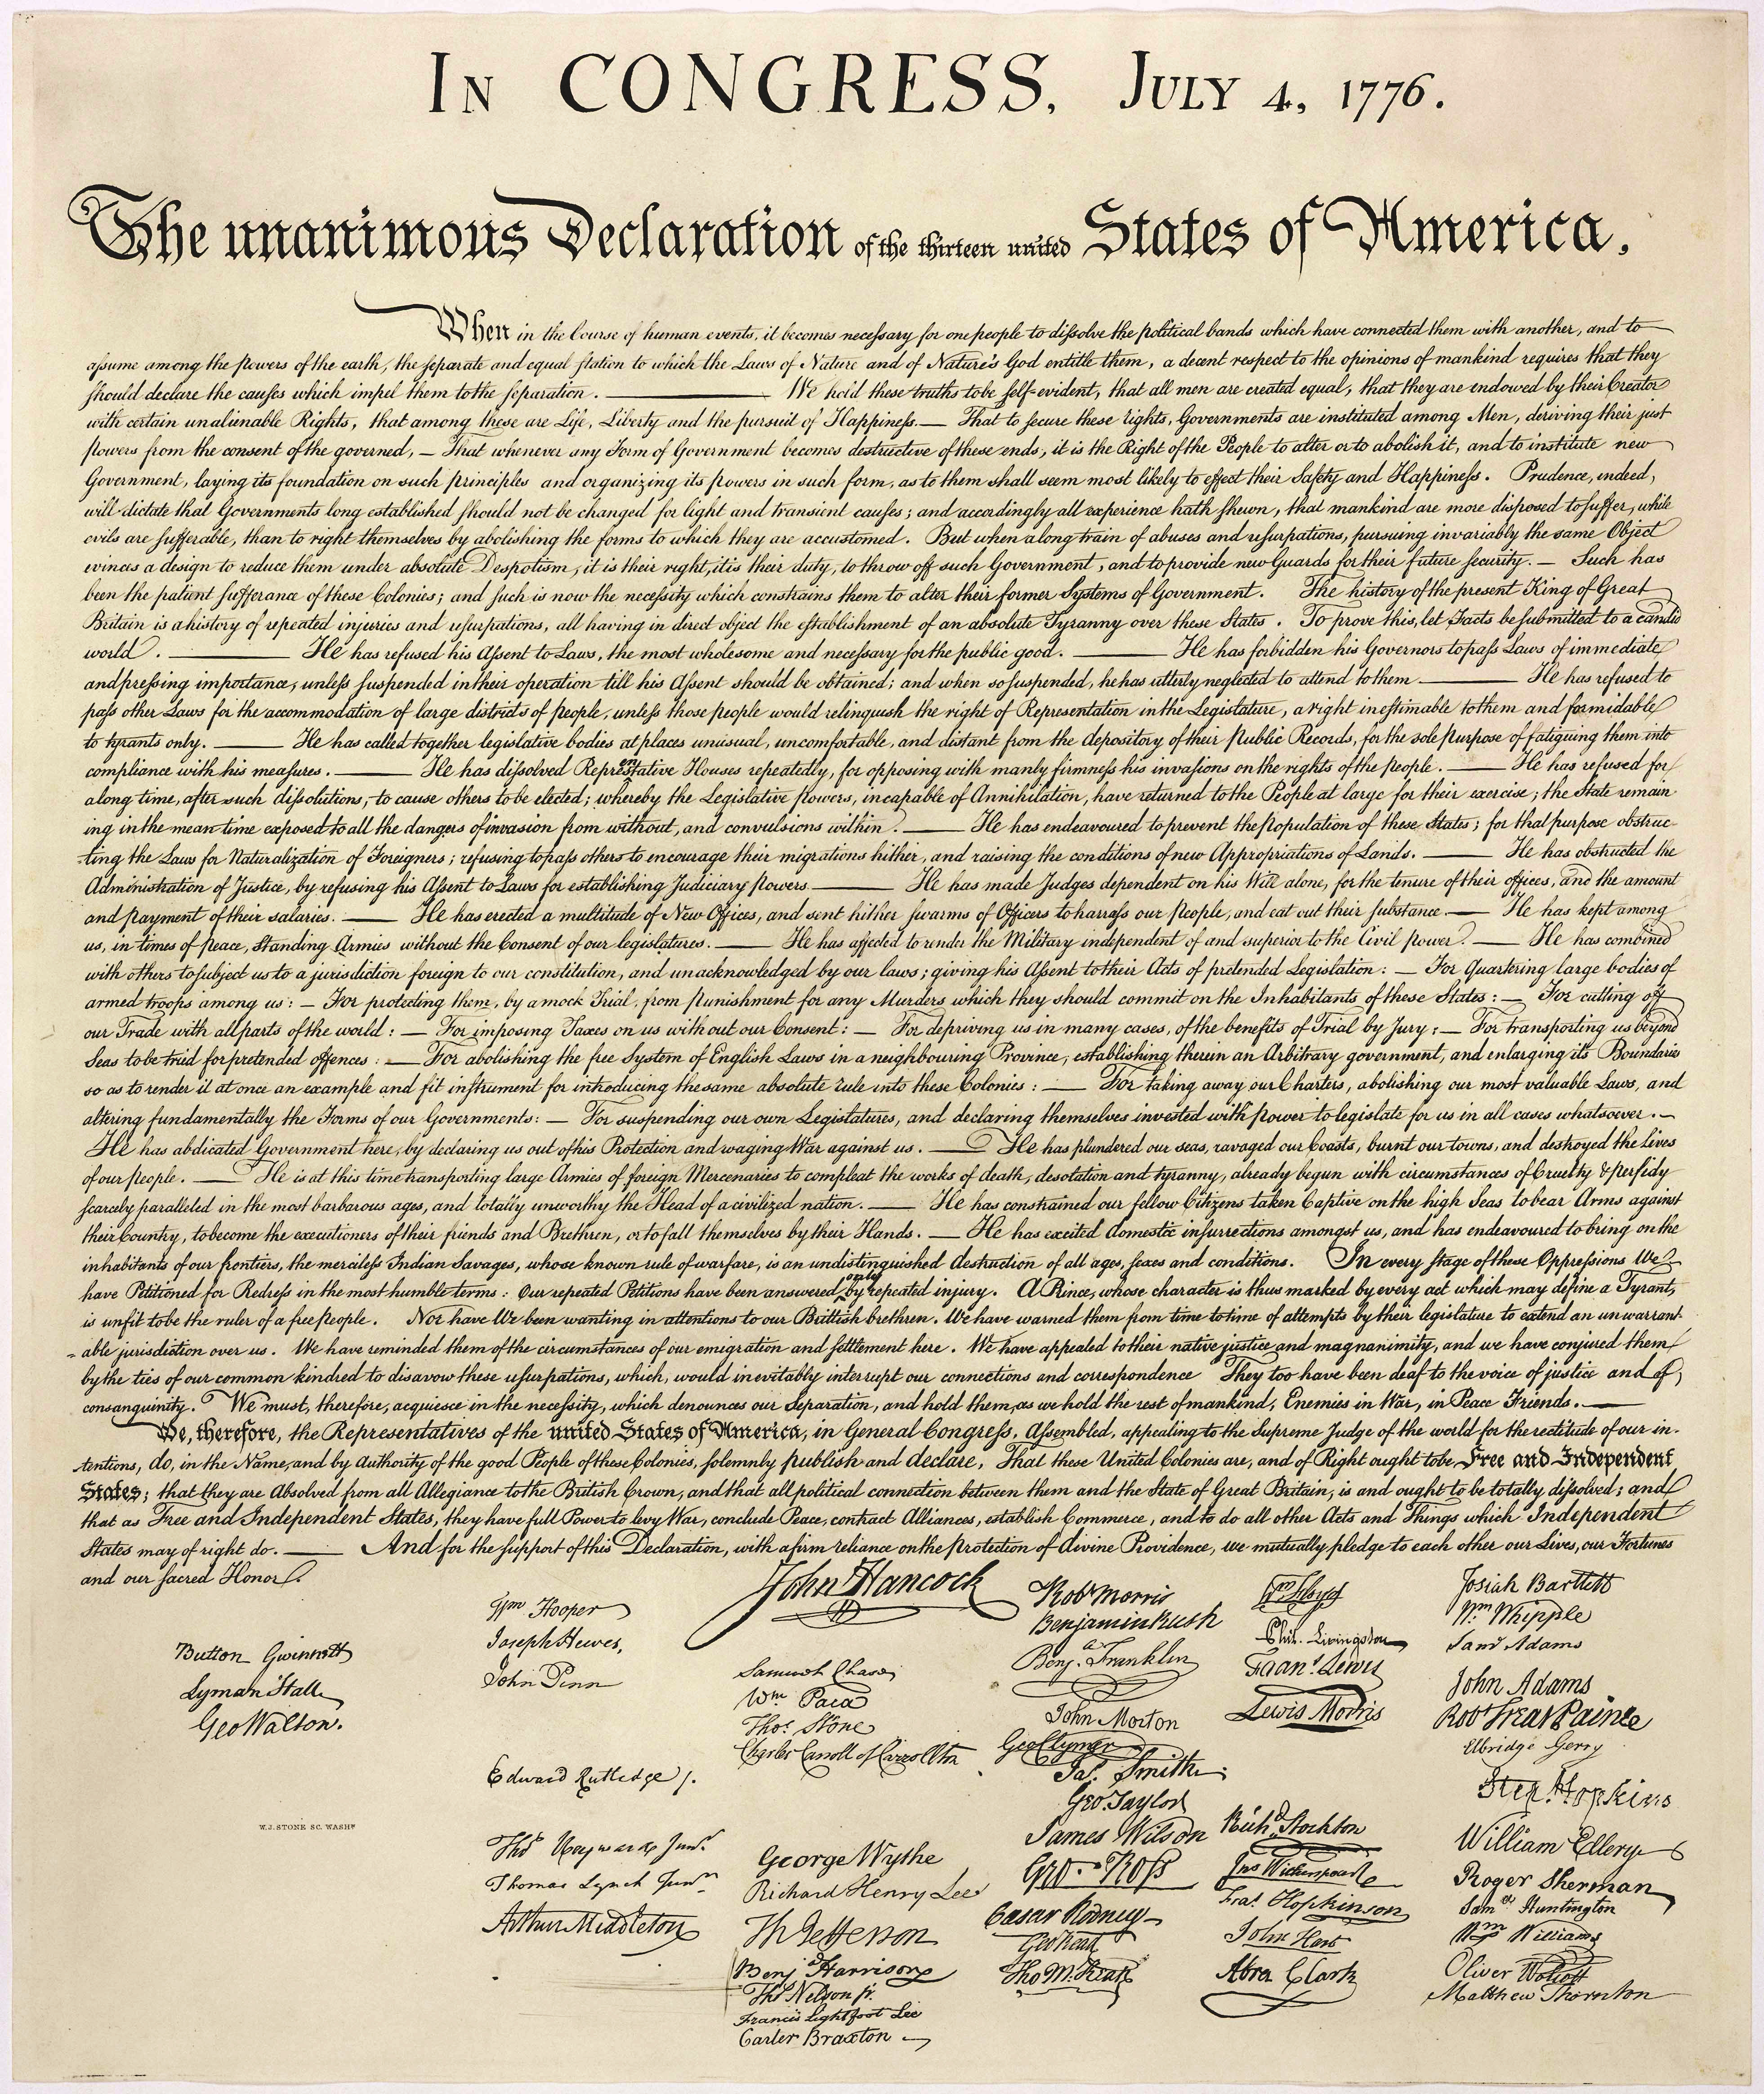 Images Of The Declaration | Thomas Jefferson's Monticello - Free Printable Copy Of The Declaration Of Independence